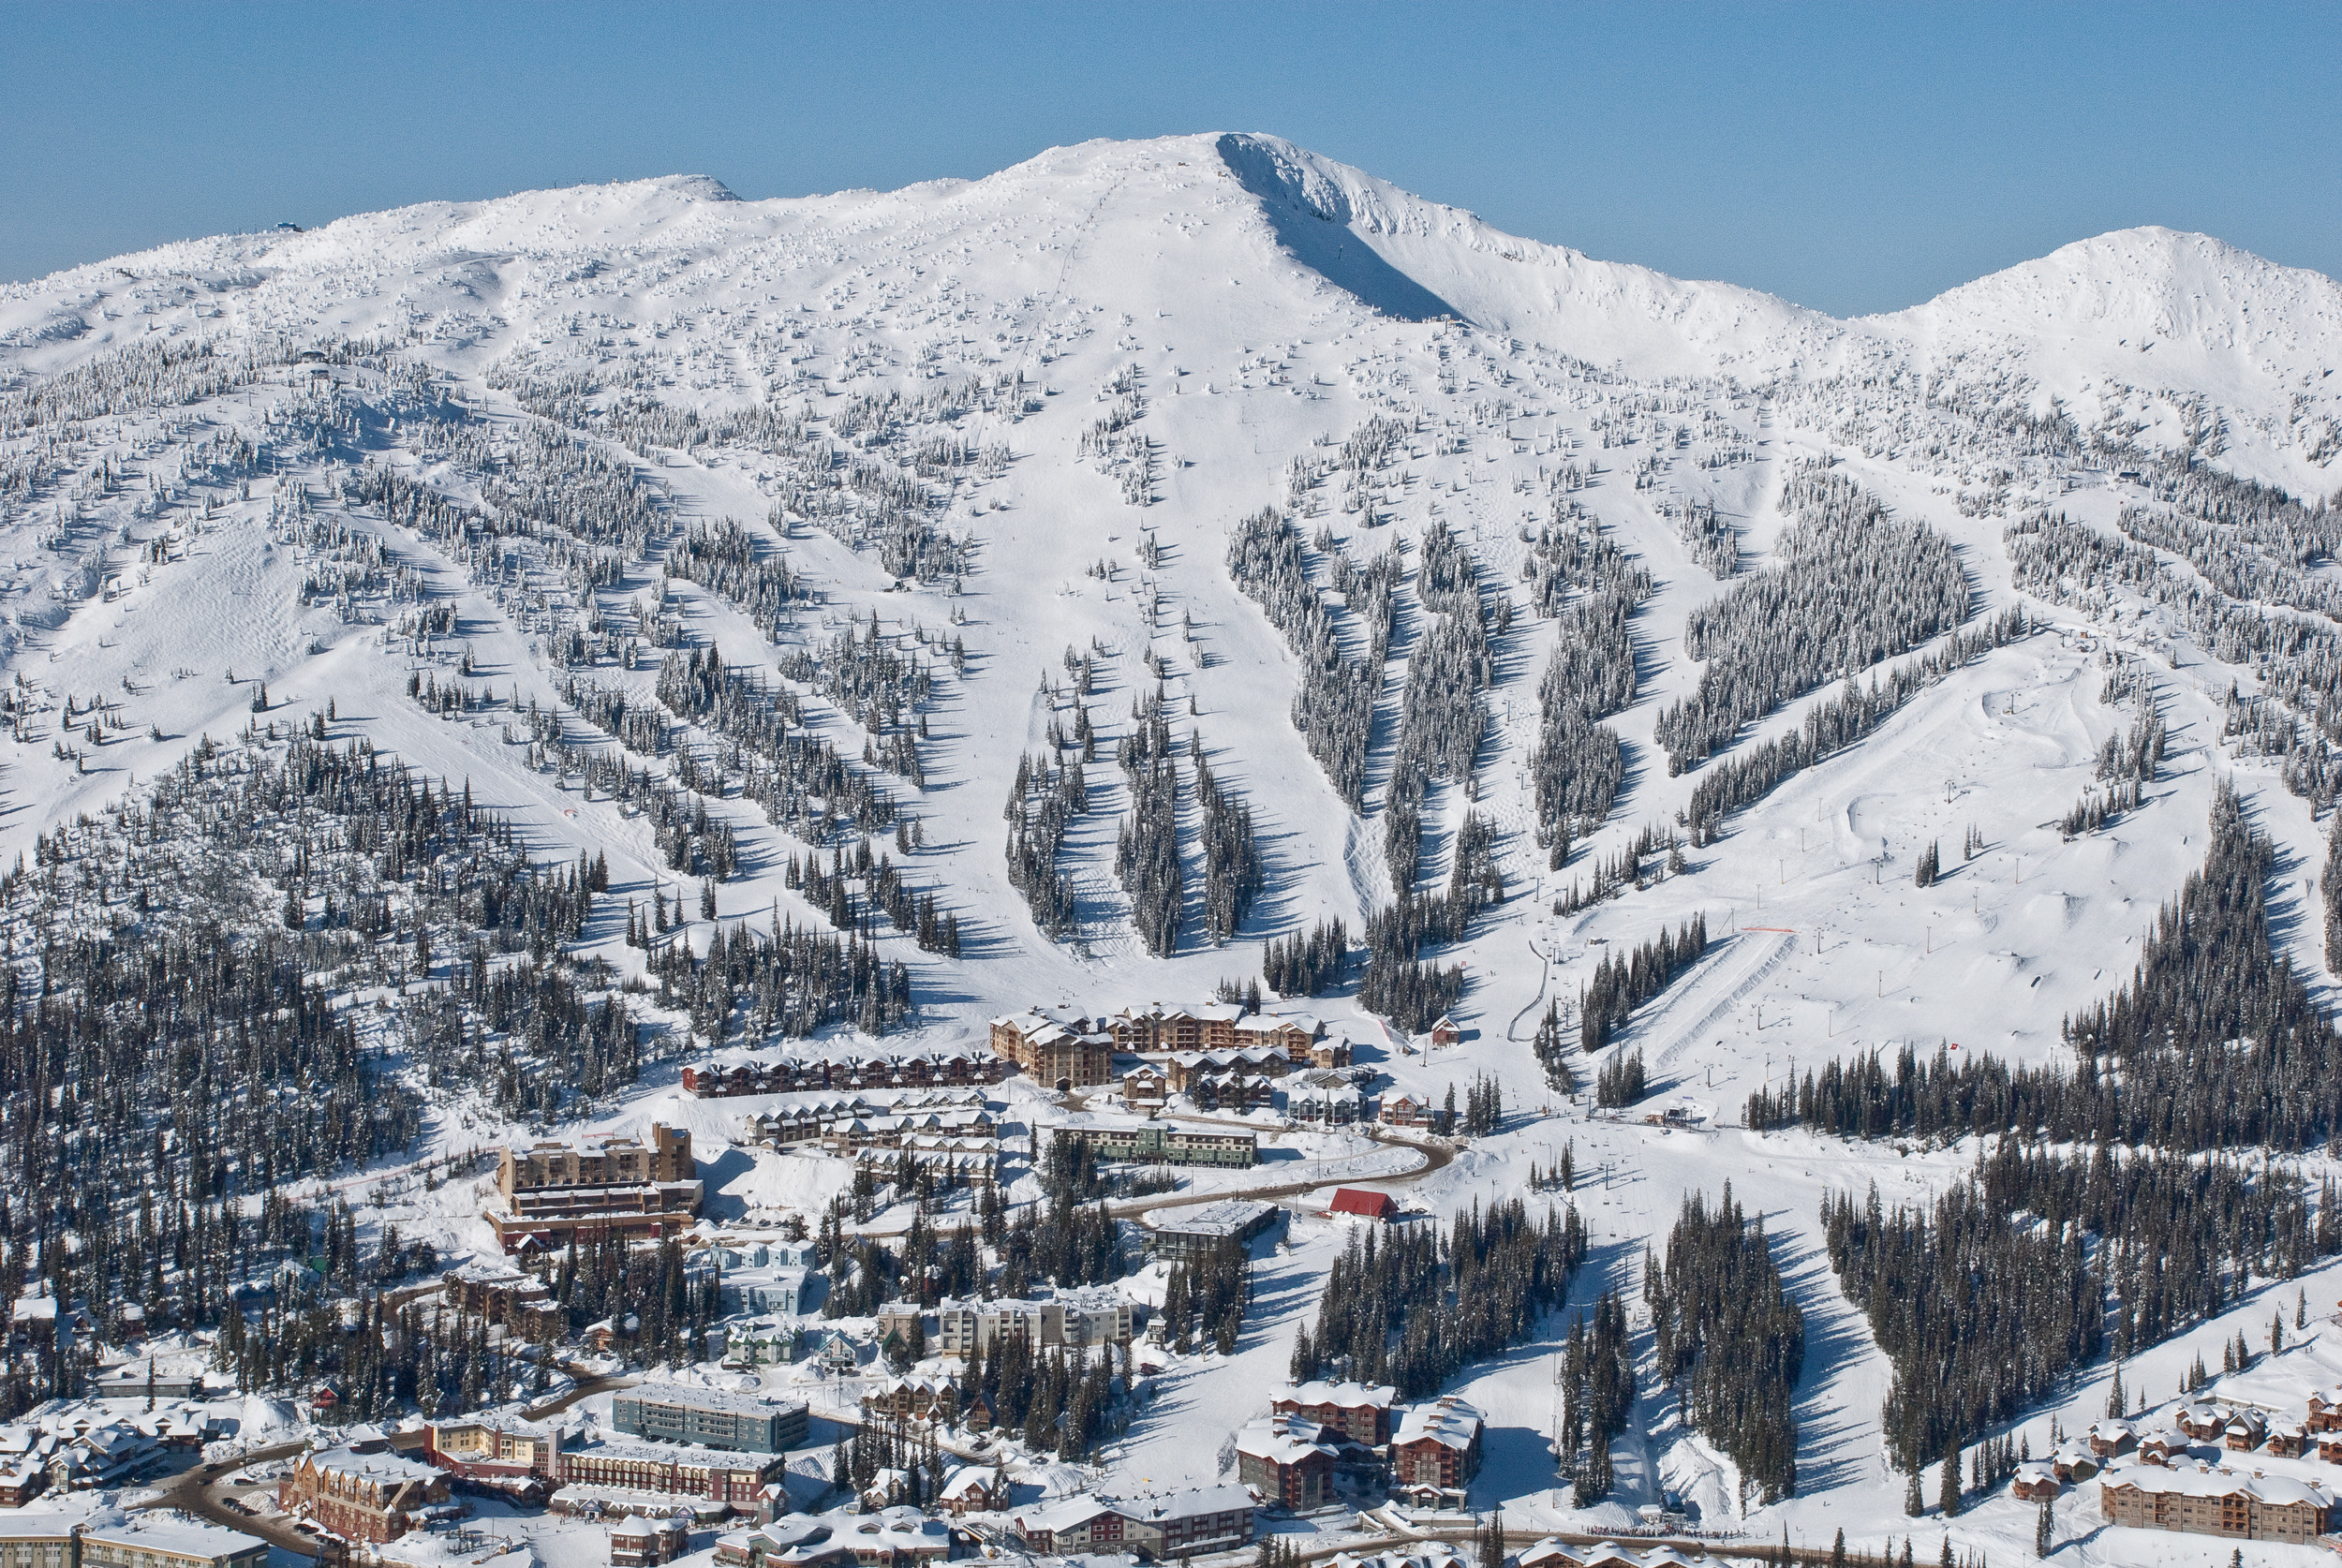 An aerial view of Big White Ski Resort. Courtesy of Big White Resortundefined